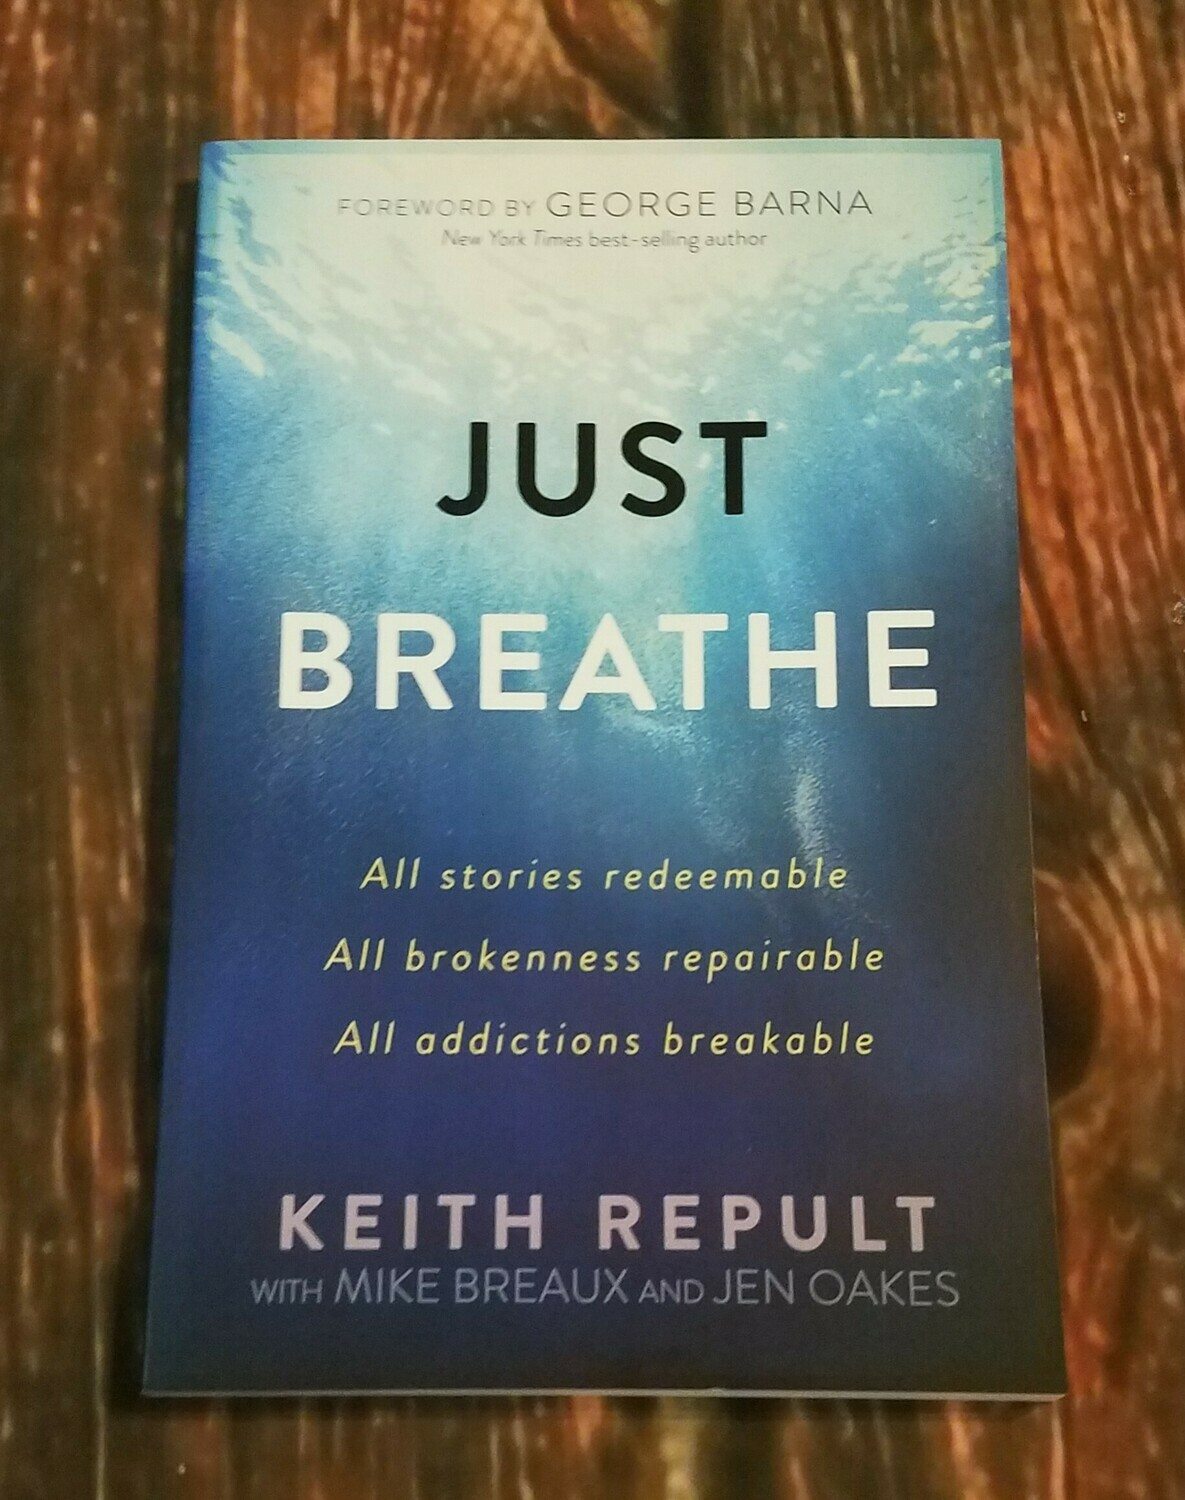 Just Breathe by Keith Repult with Mike Breaux and Jen Oakes